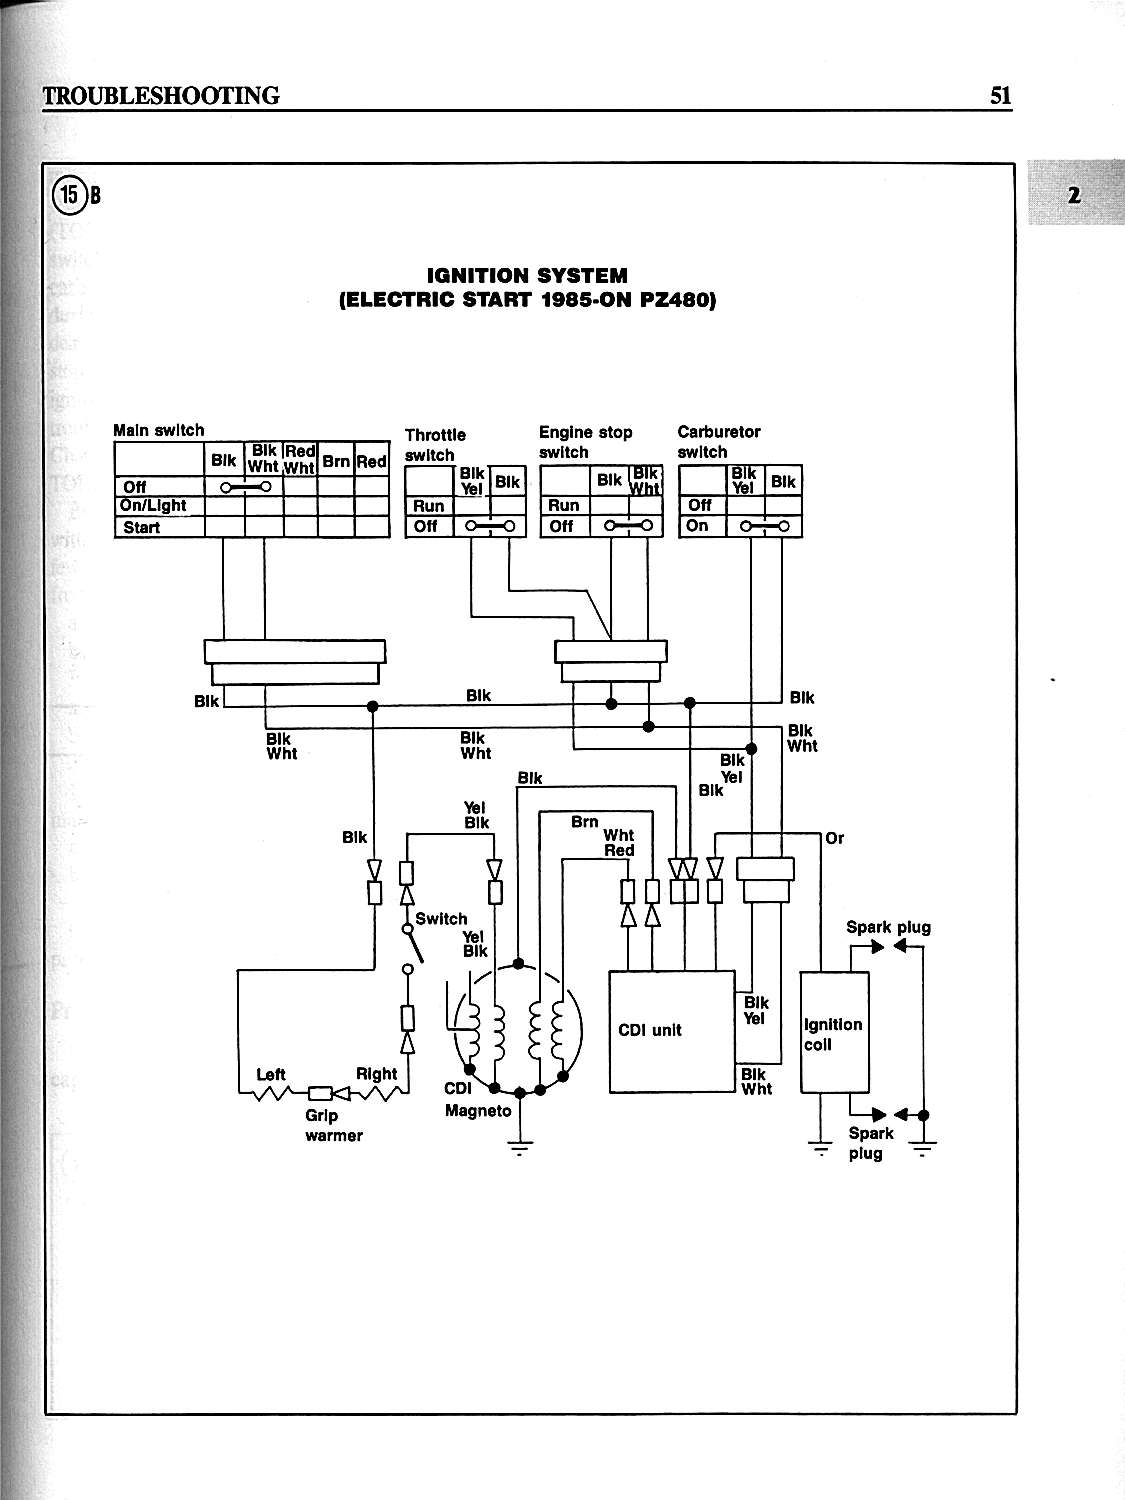 wire diagram yamaha enticer | overeat-list wiring diagram models -  overeat-list.hoteldelmarlidodicamaiore.it  wiring diagram library